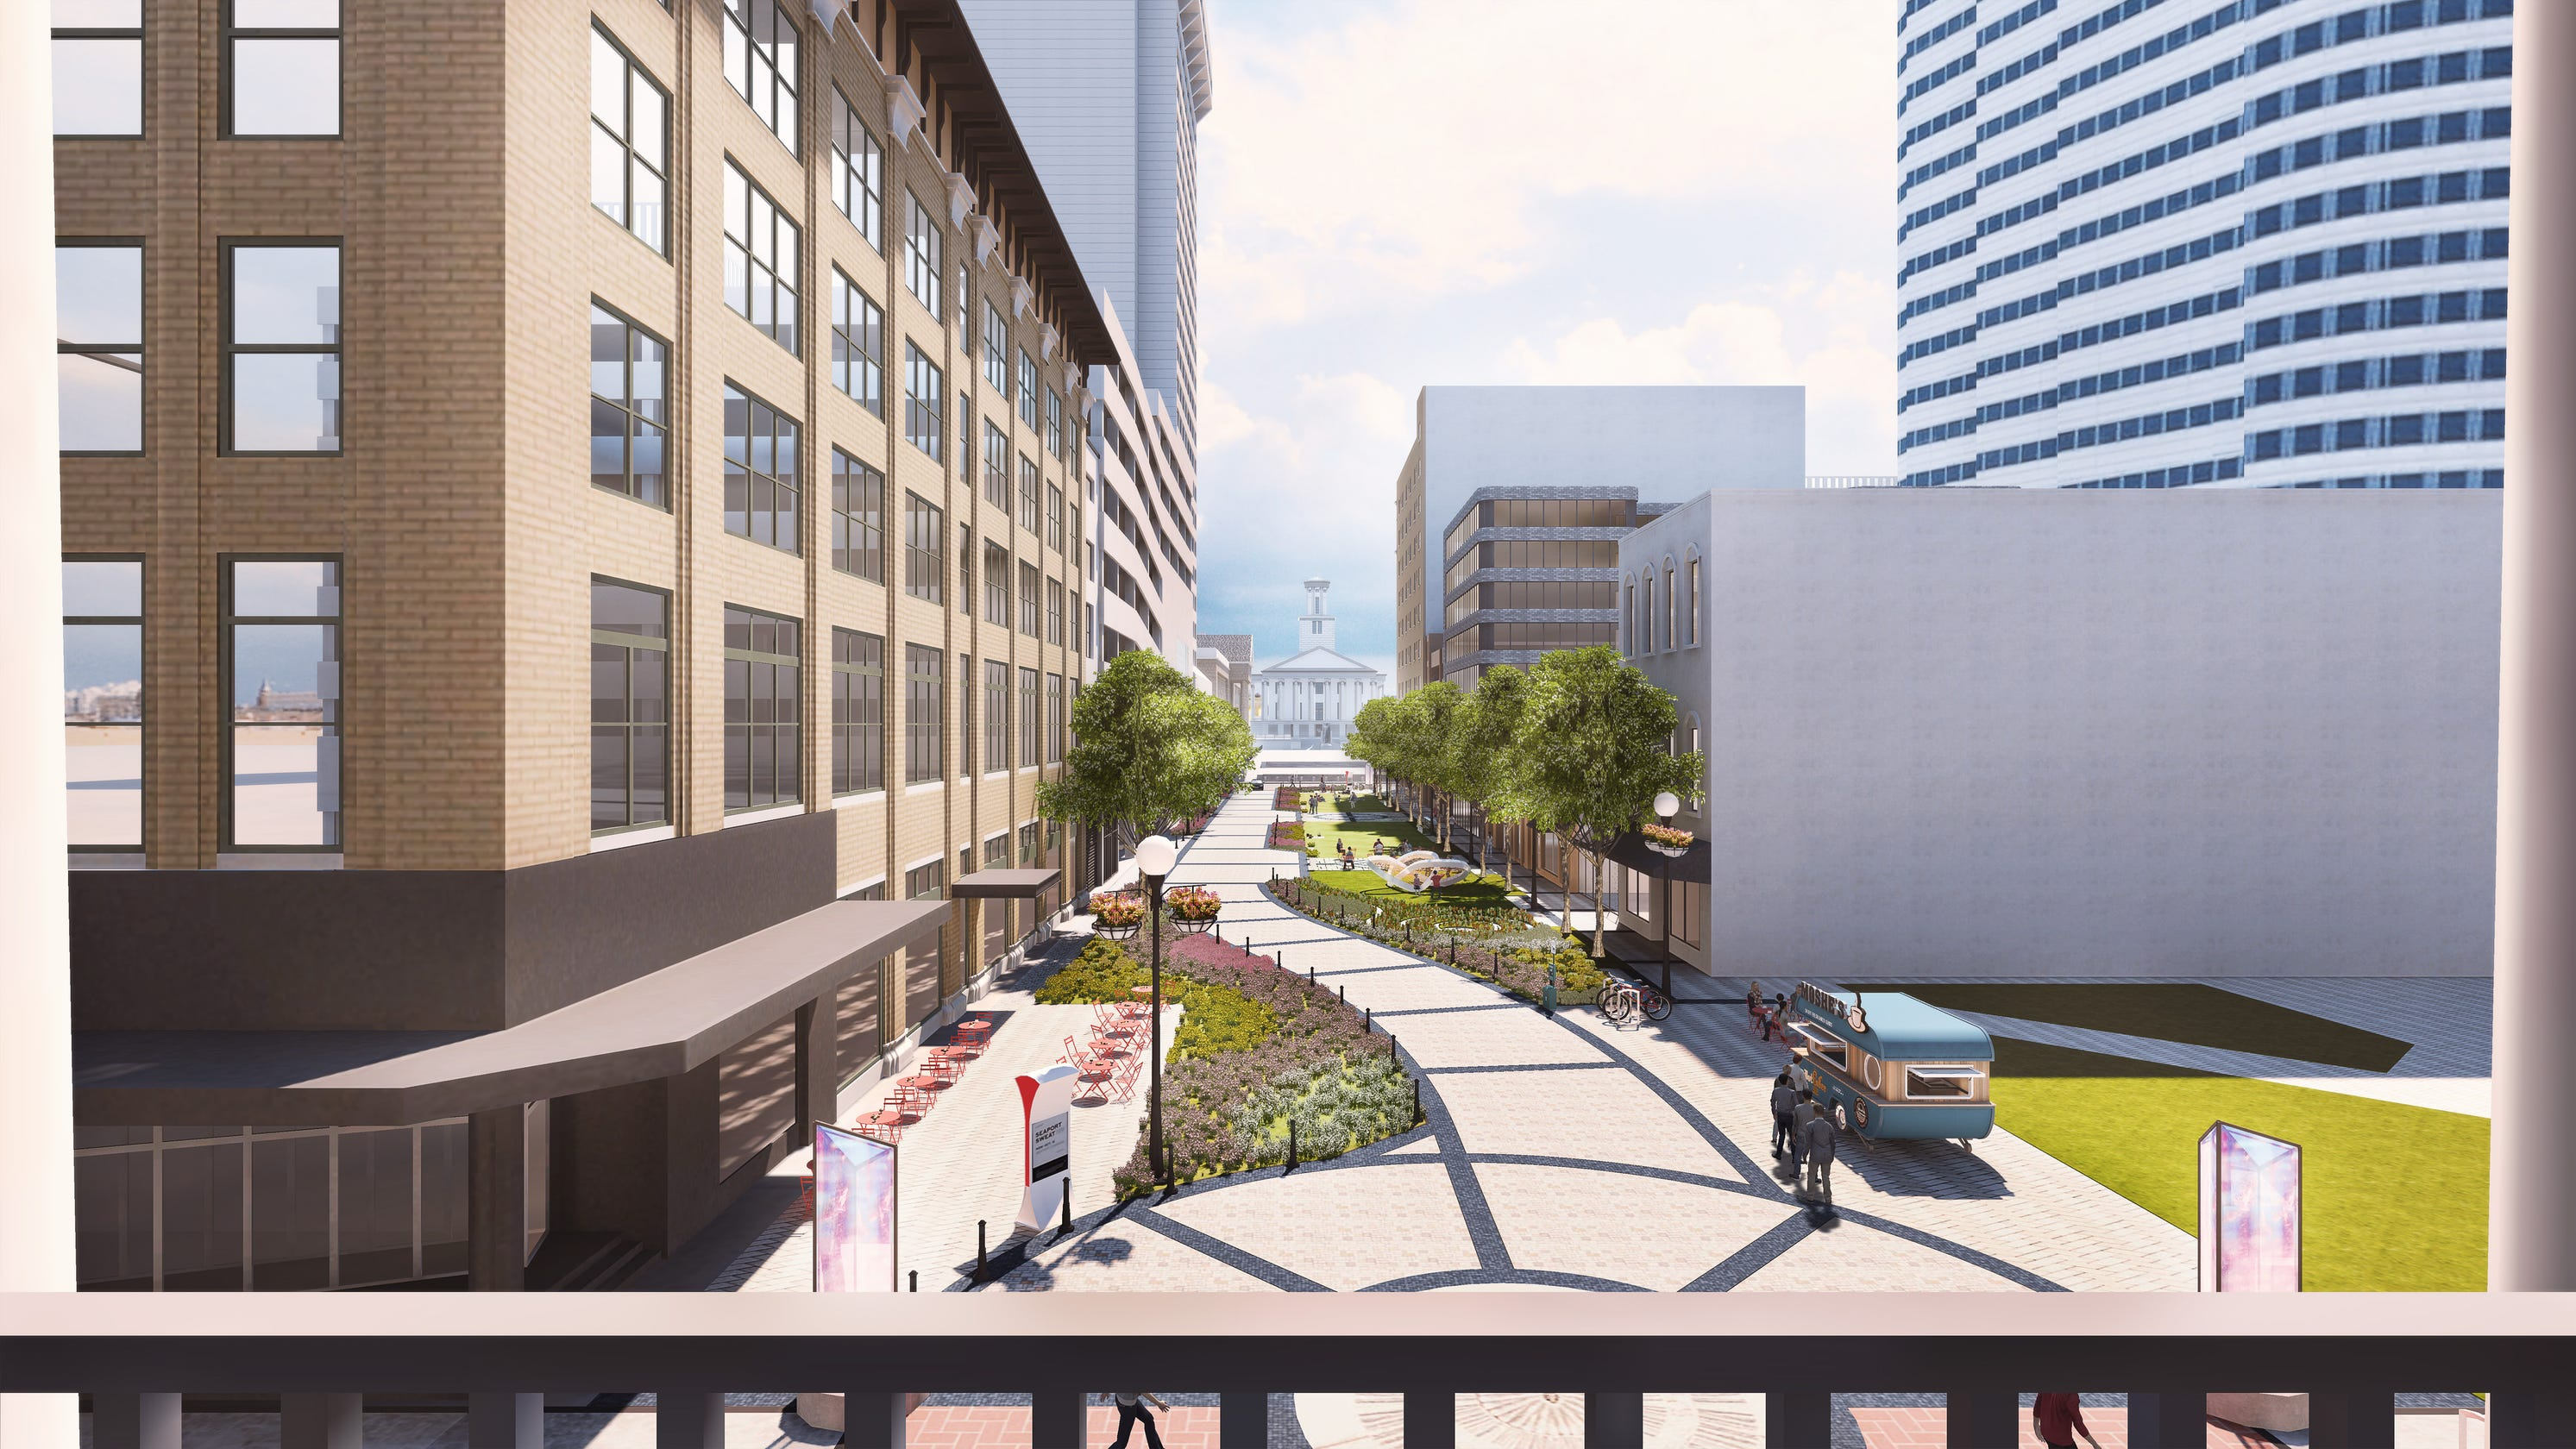 Downtown developers duel over future of historic Nashville corridor